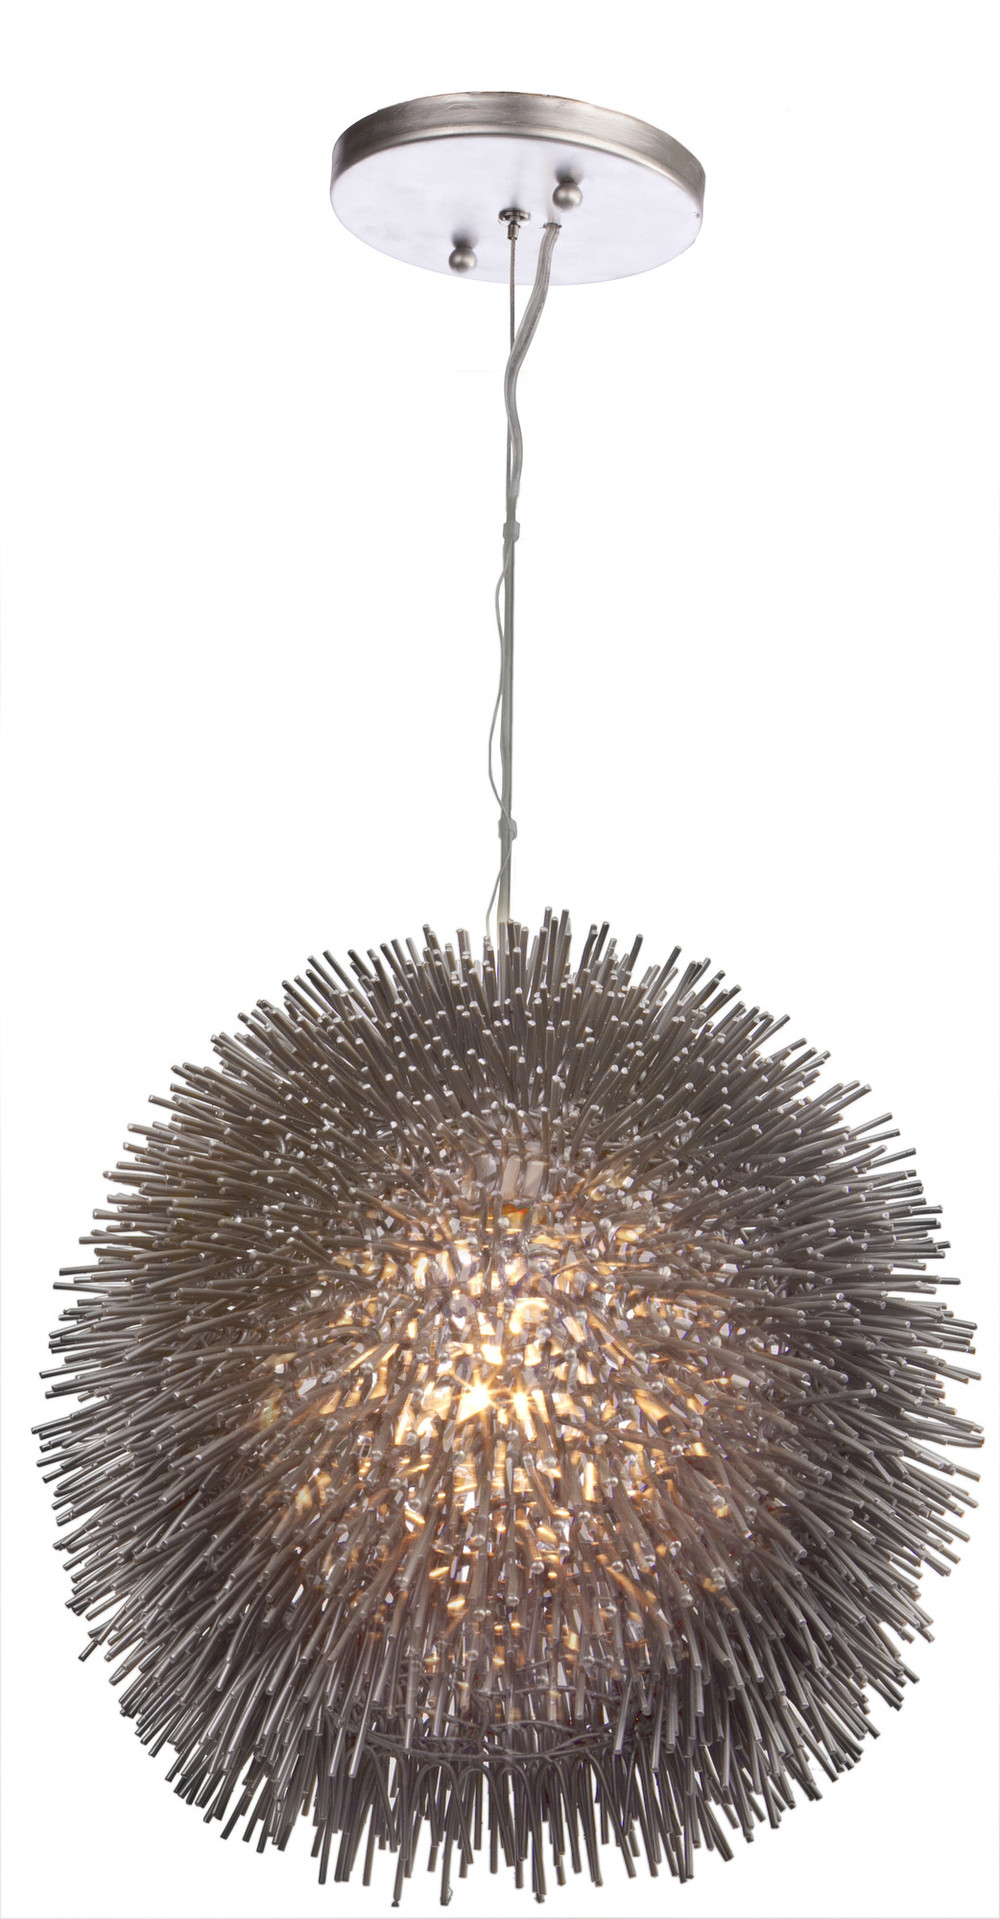 Varaluz-Urchin-1-Light-Mini-Pendant-169 (5).jpg